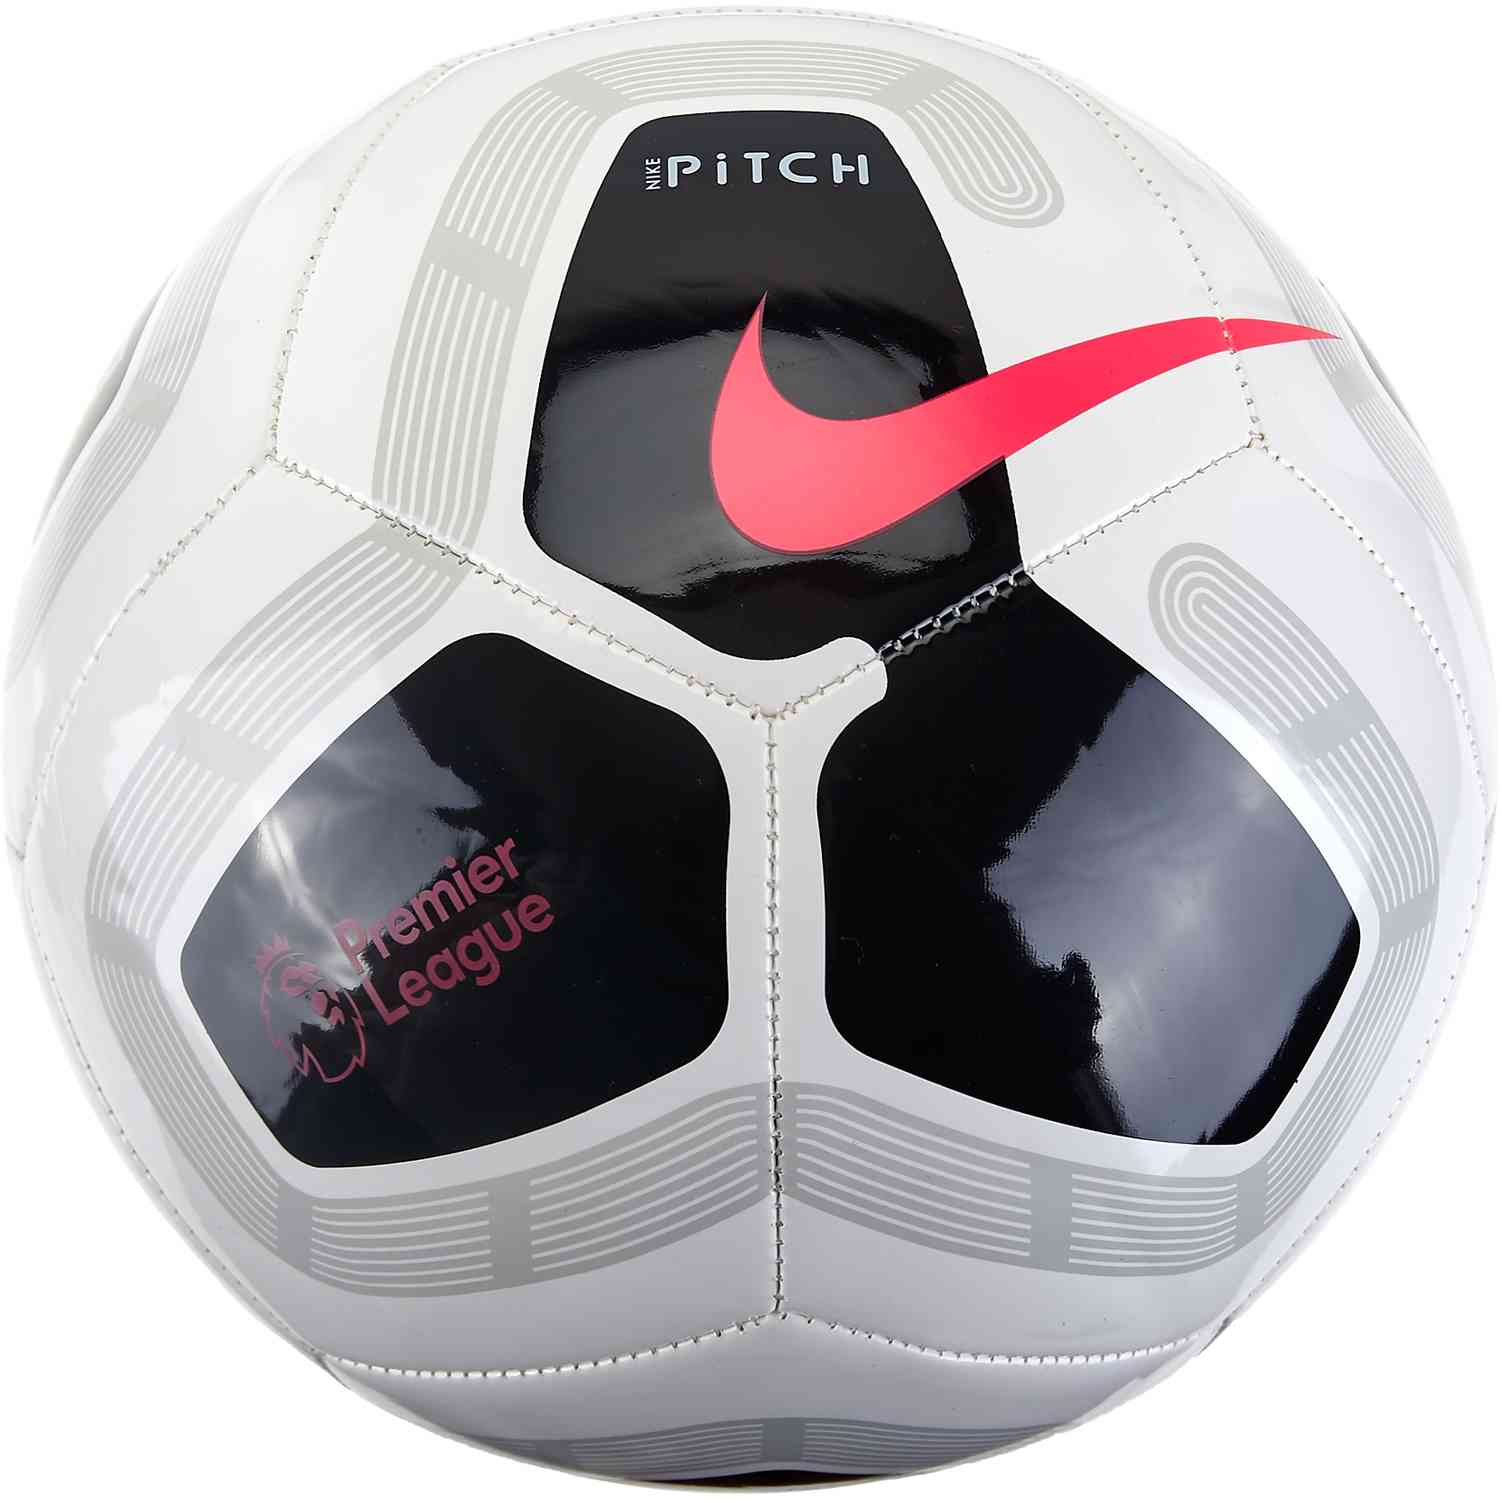 discount sale catch outlet store Nike Premier League Pitch Training Soccer Ball - 2019/20 - SoccerPro